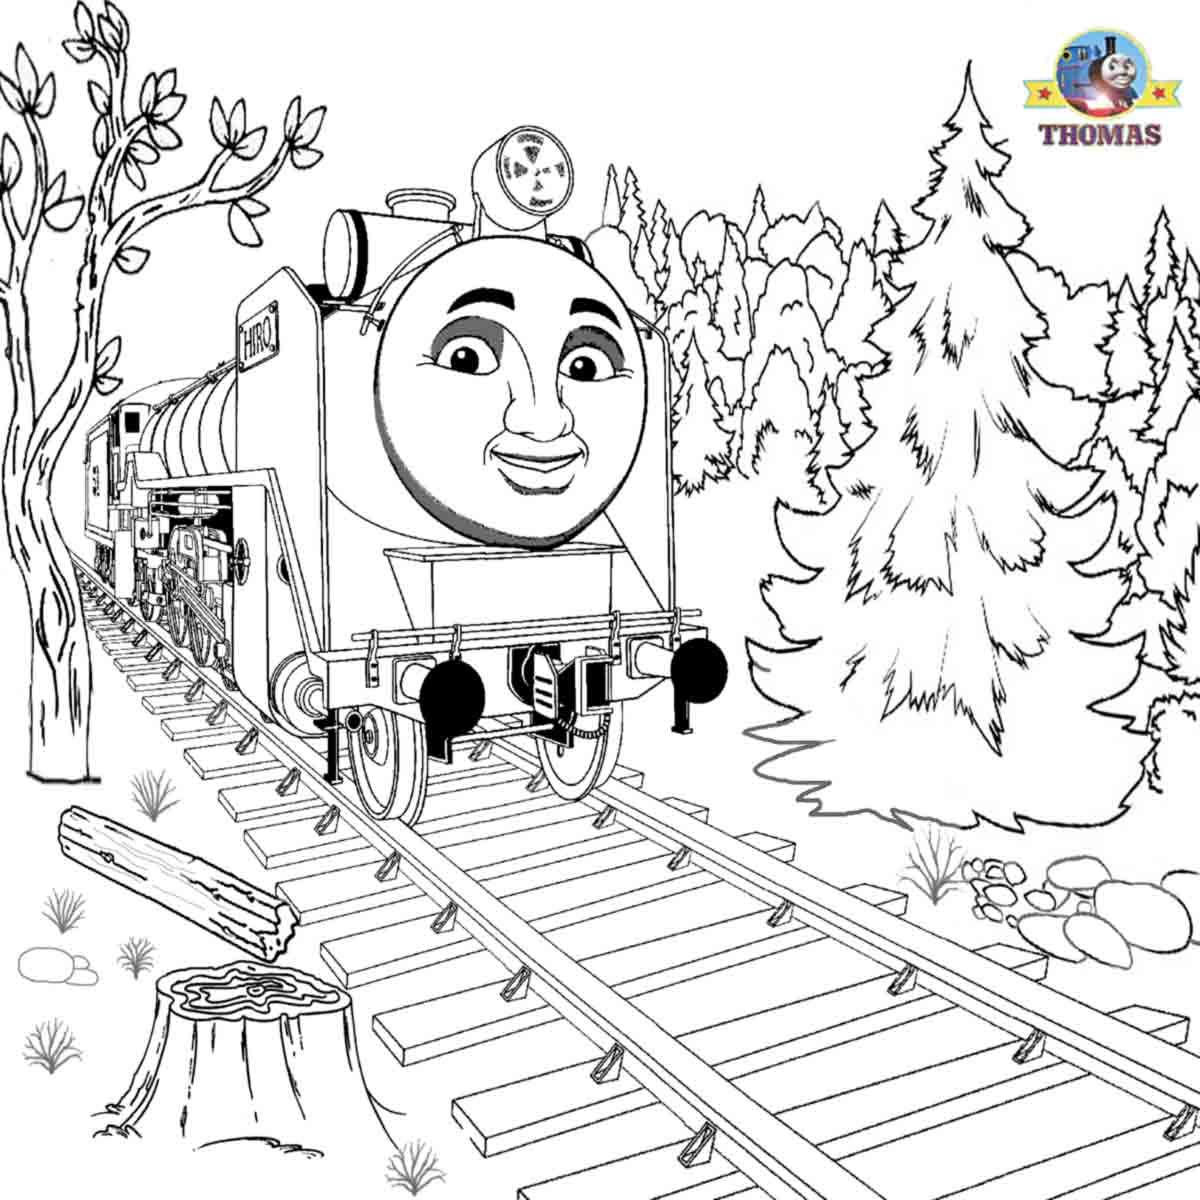 Rosie train coloring - Hiro Coloring Page